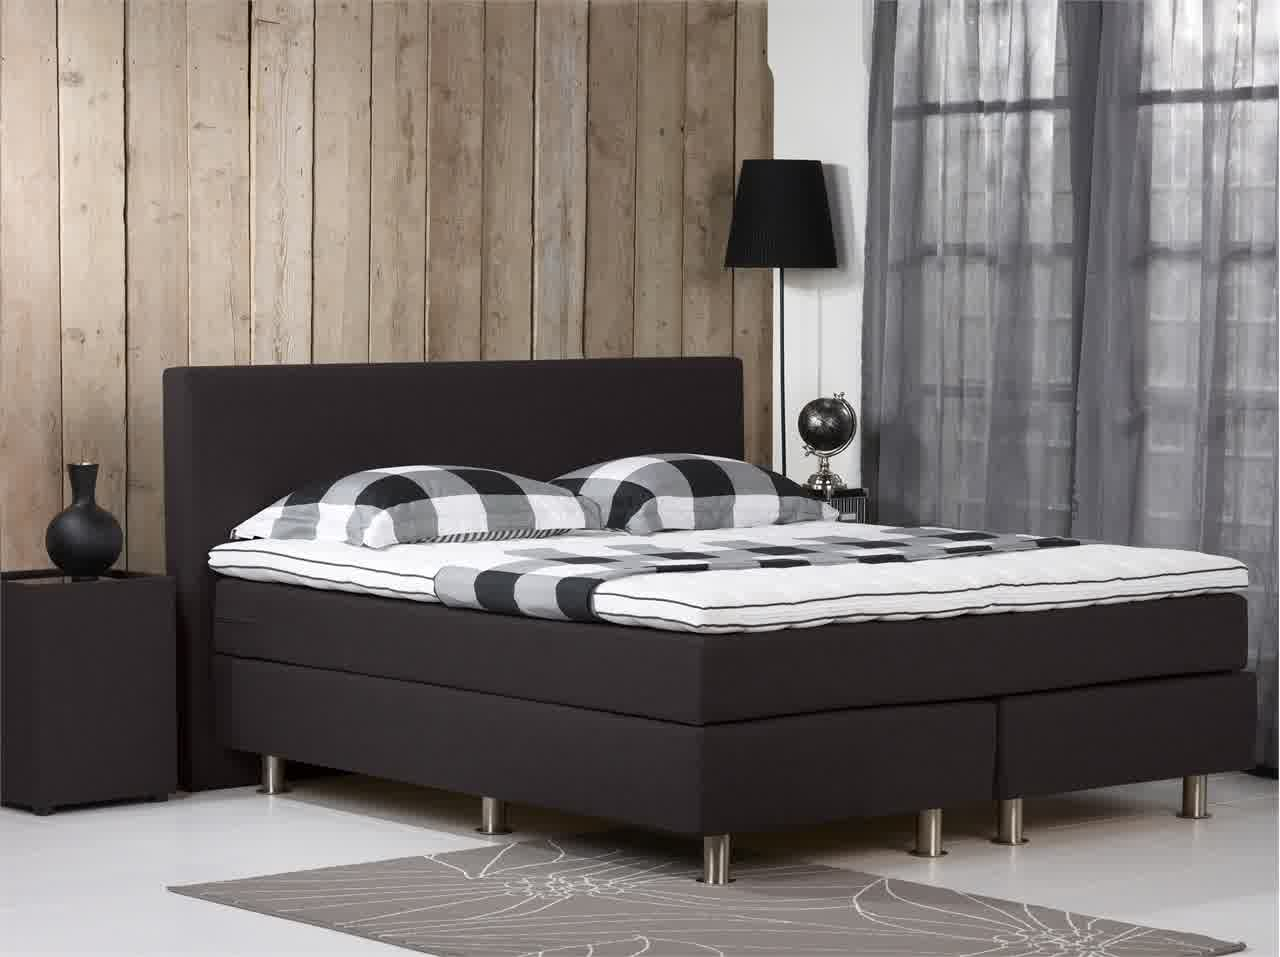 ikea box spring we need it or not depends on your bed type homesfeed. Black Bedroom Furniture Sets. Home Design Ideas